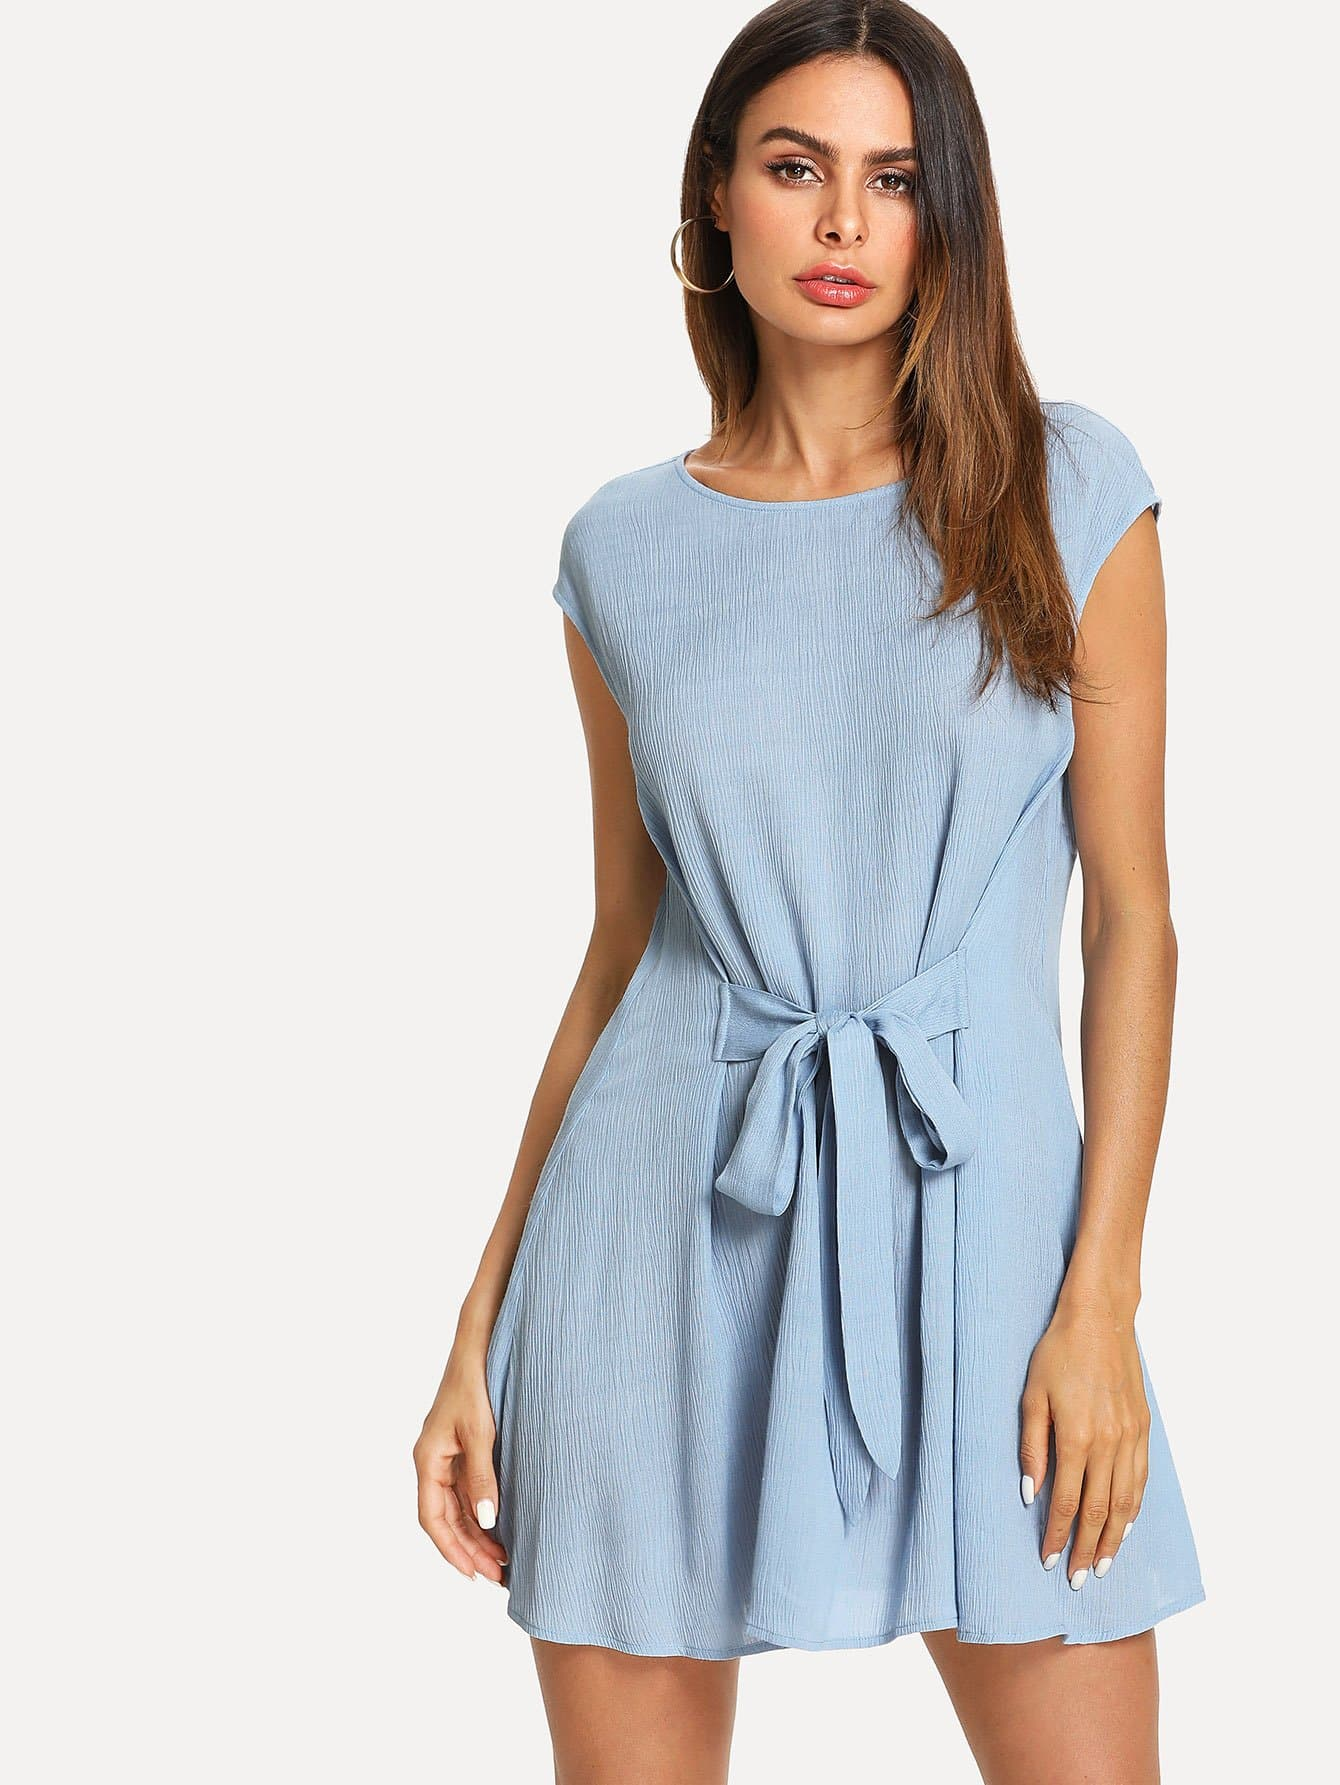 Knot Front Solid Dress knot front fit